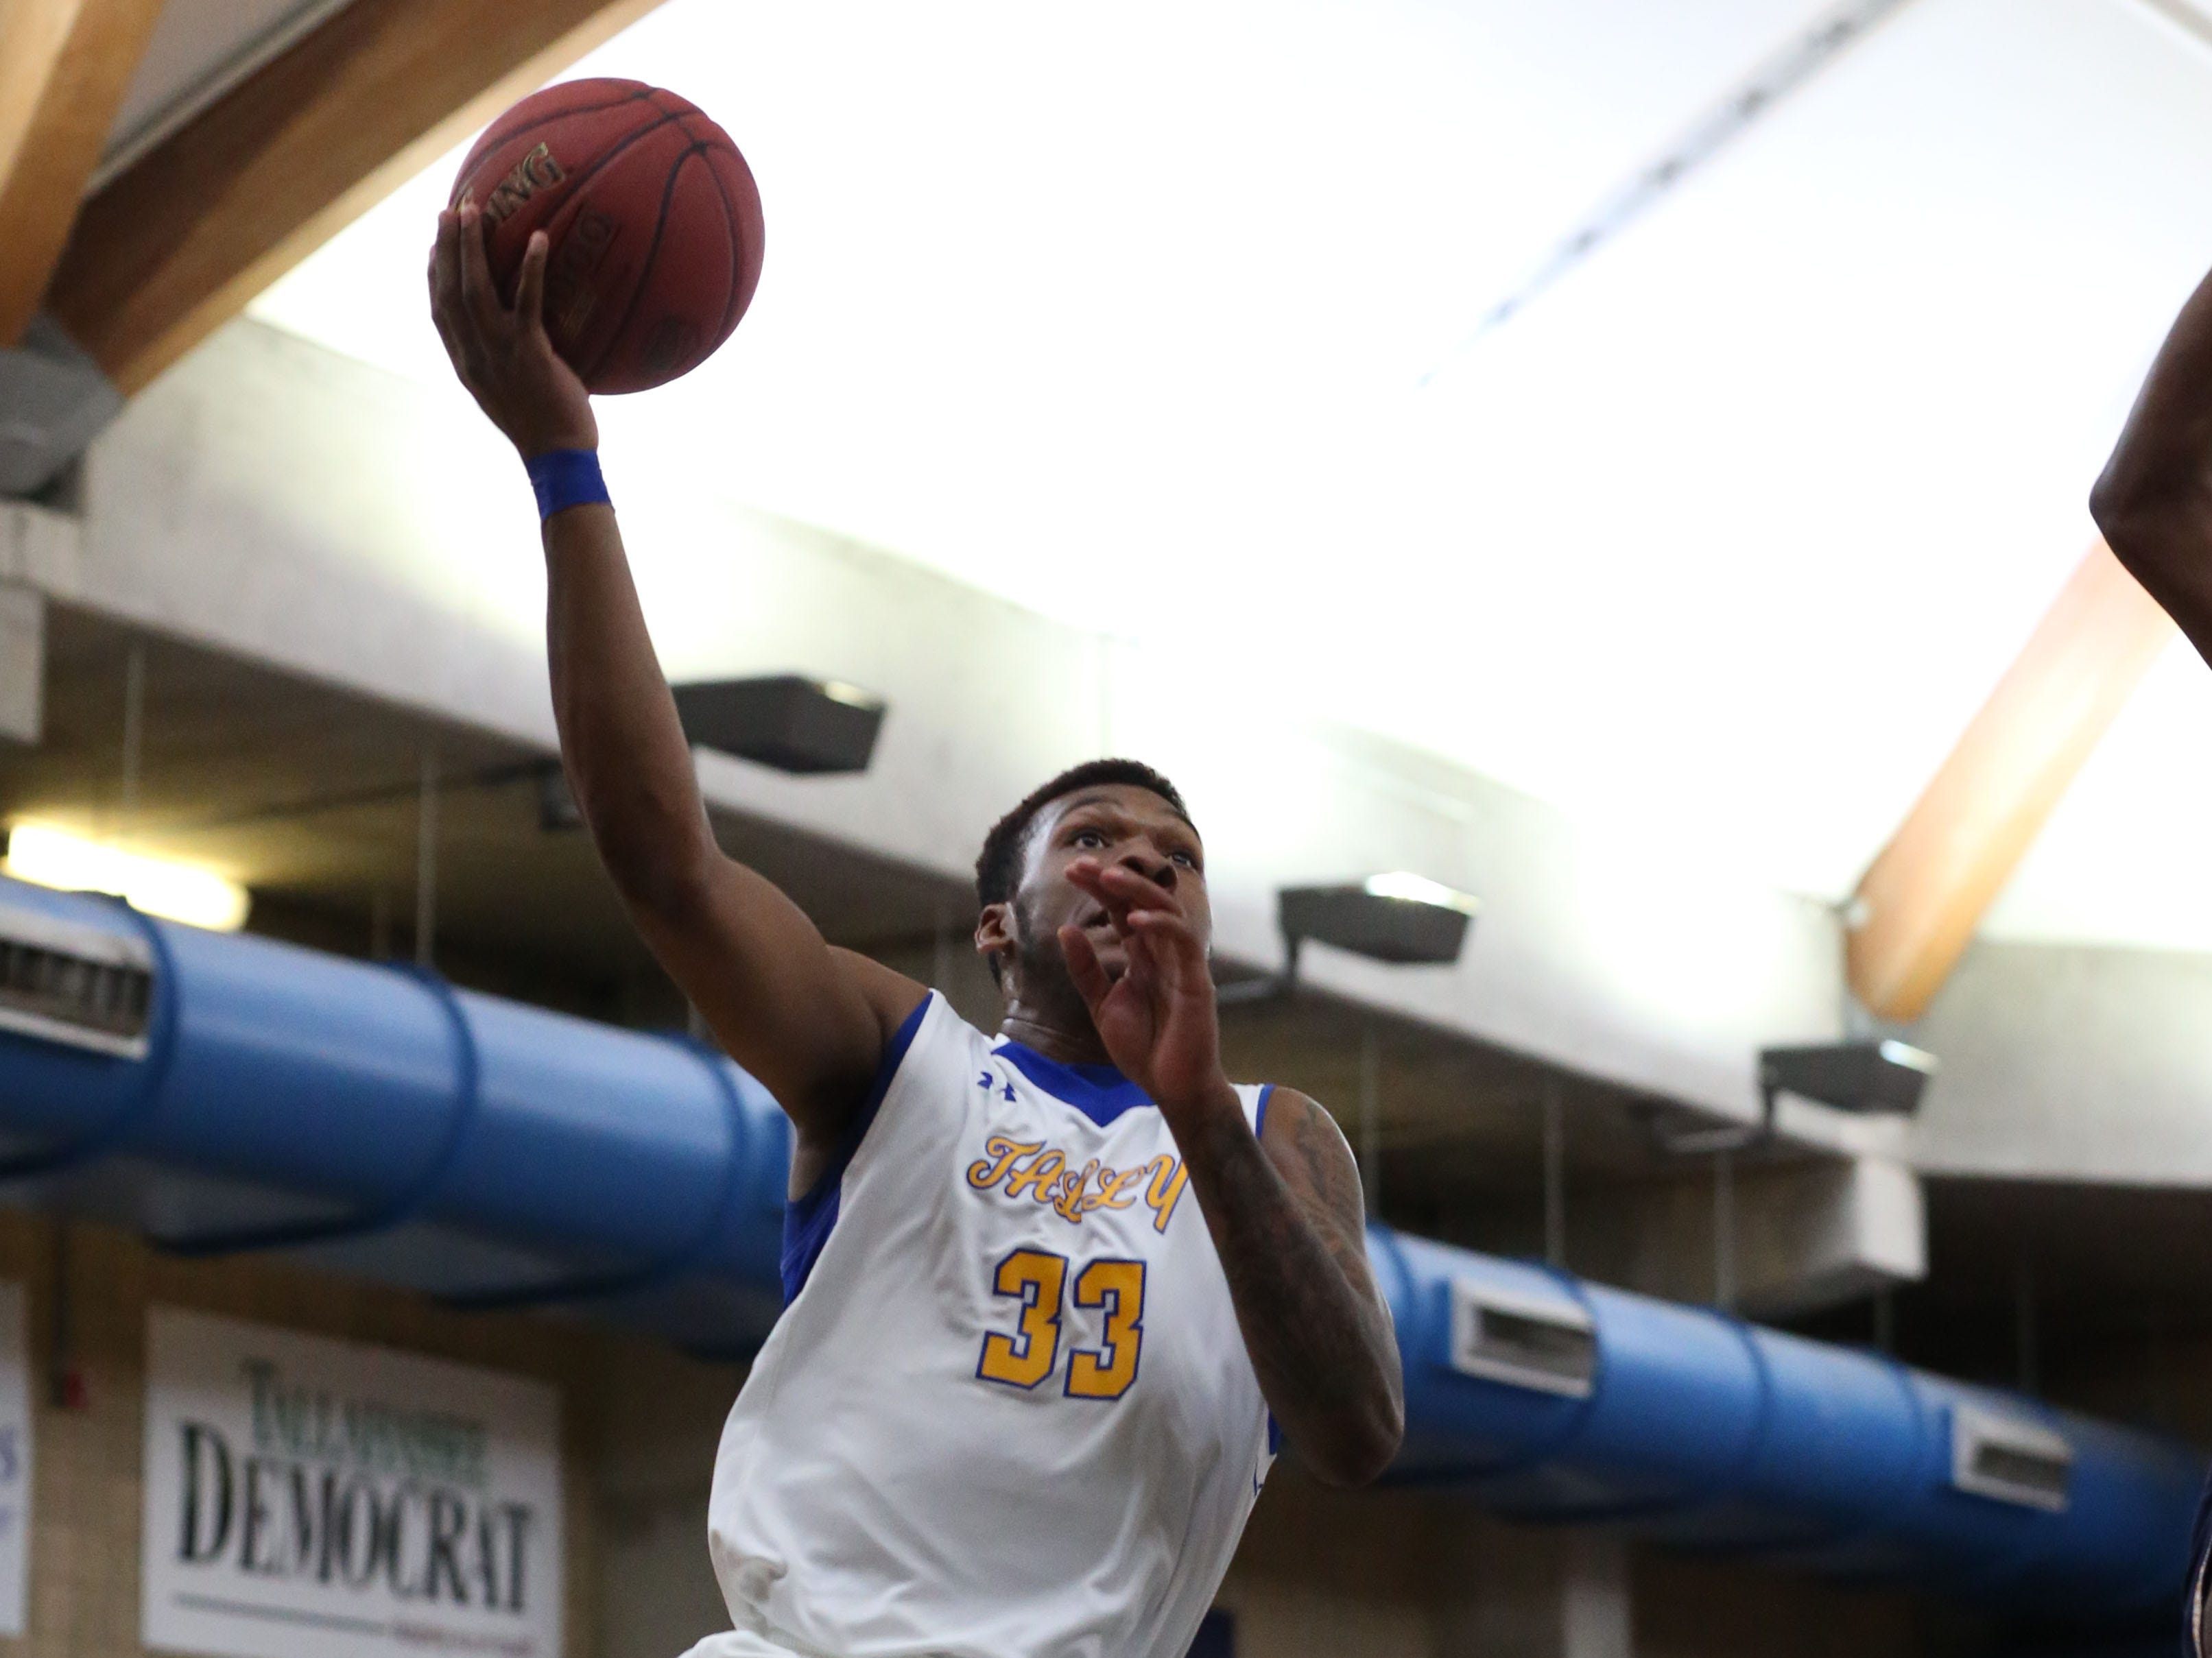 Tallahassee Community College Eagles forward Natorian Tyson (33) goes in for a layup. The Tallahassee Community College Eagles host the Gulf Coast State College Commodores in a conference match-up in the Eagledome, Saturday, Jan. 5, 2019.